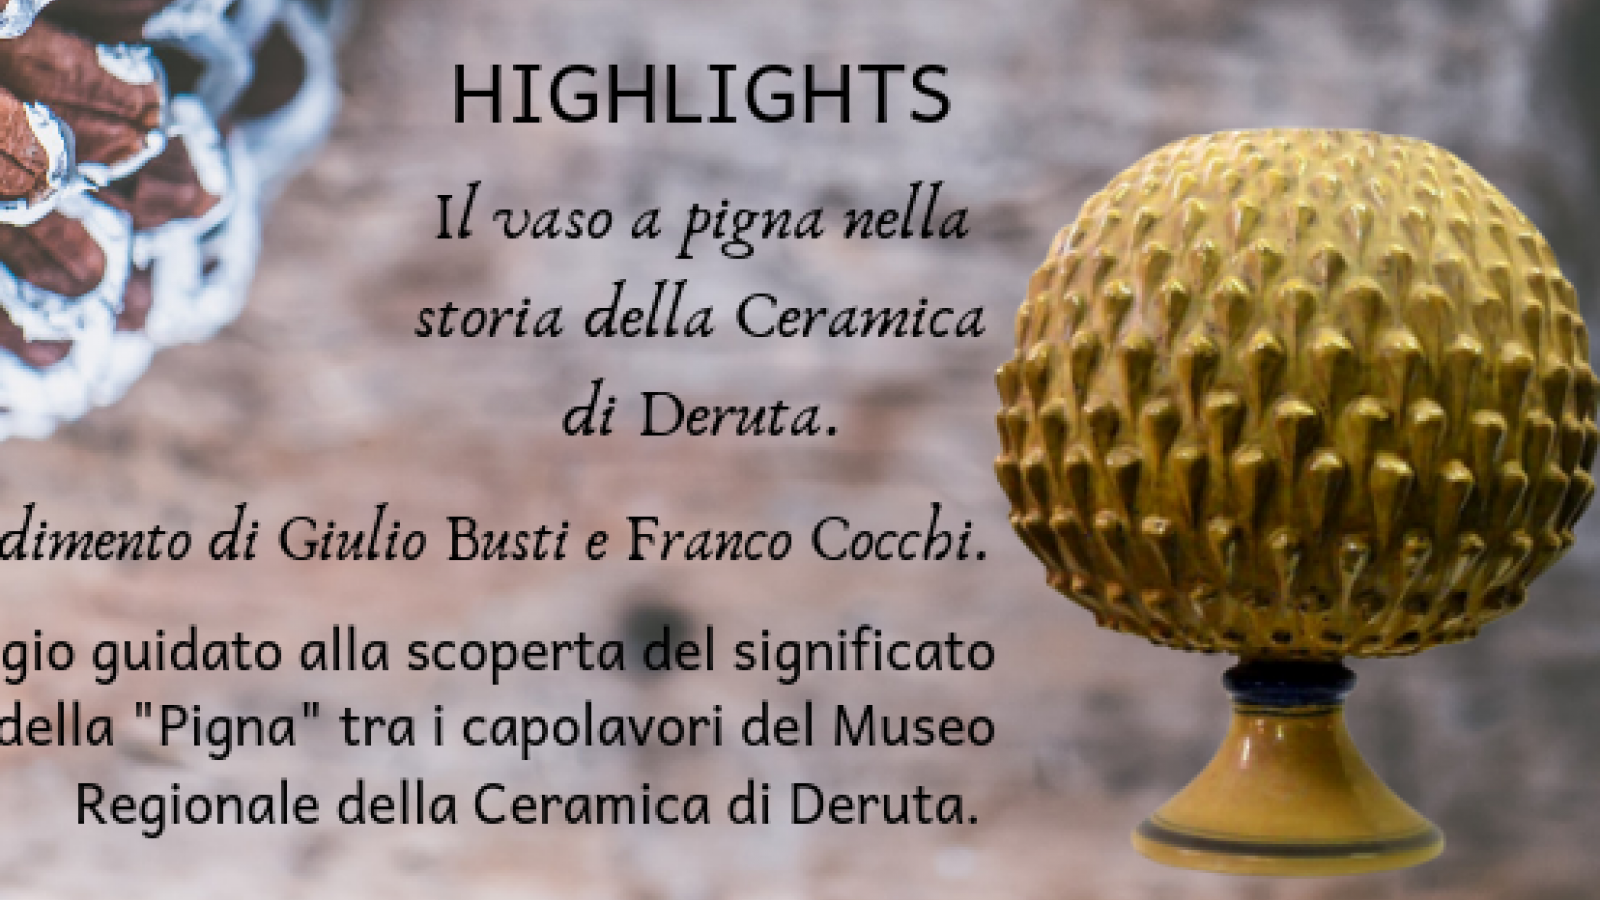 HIGHLIGHTS. The pinecone vase in the history of ceramics of Deruta